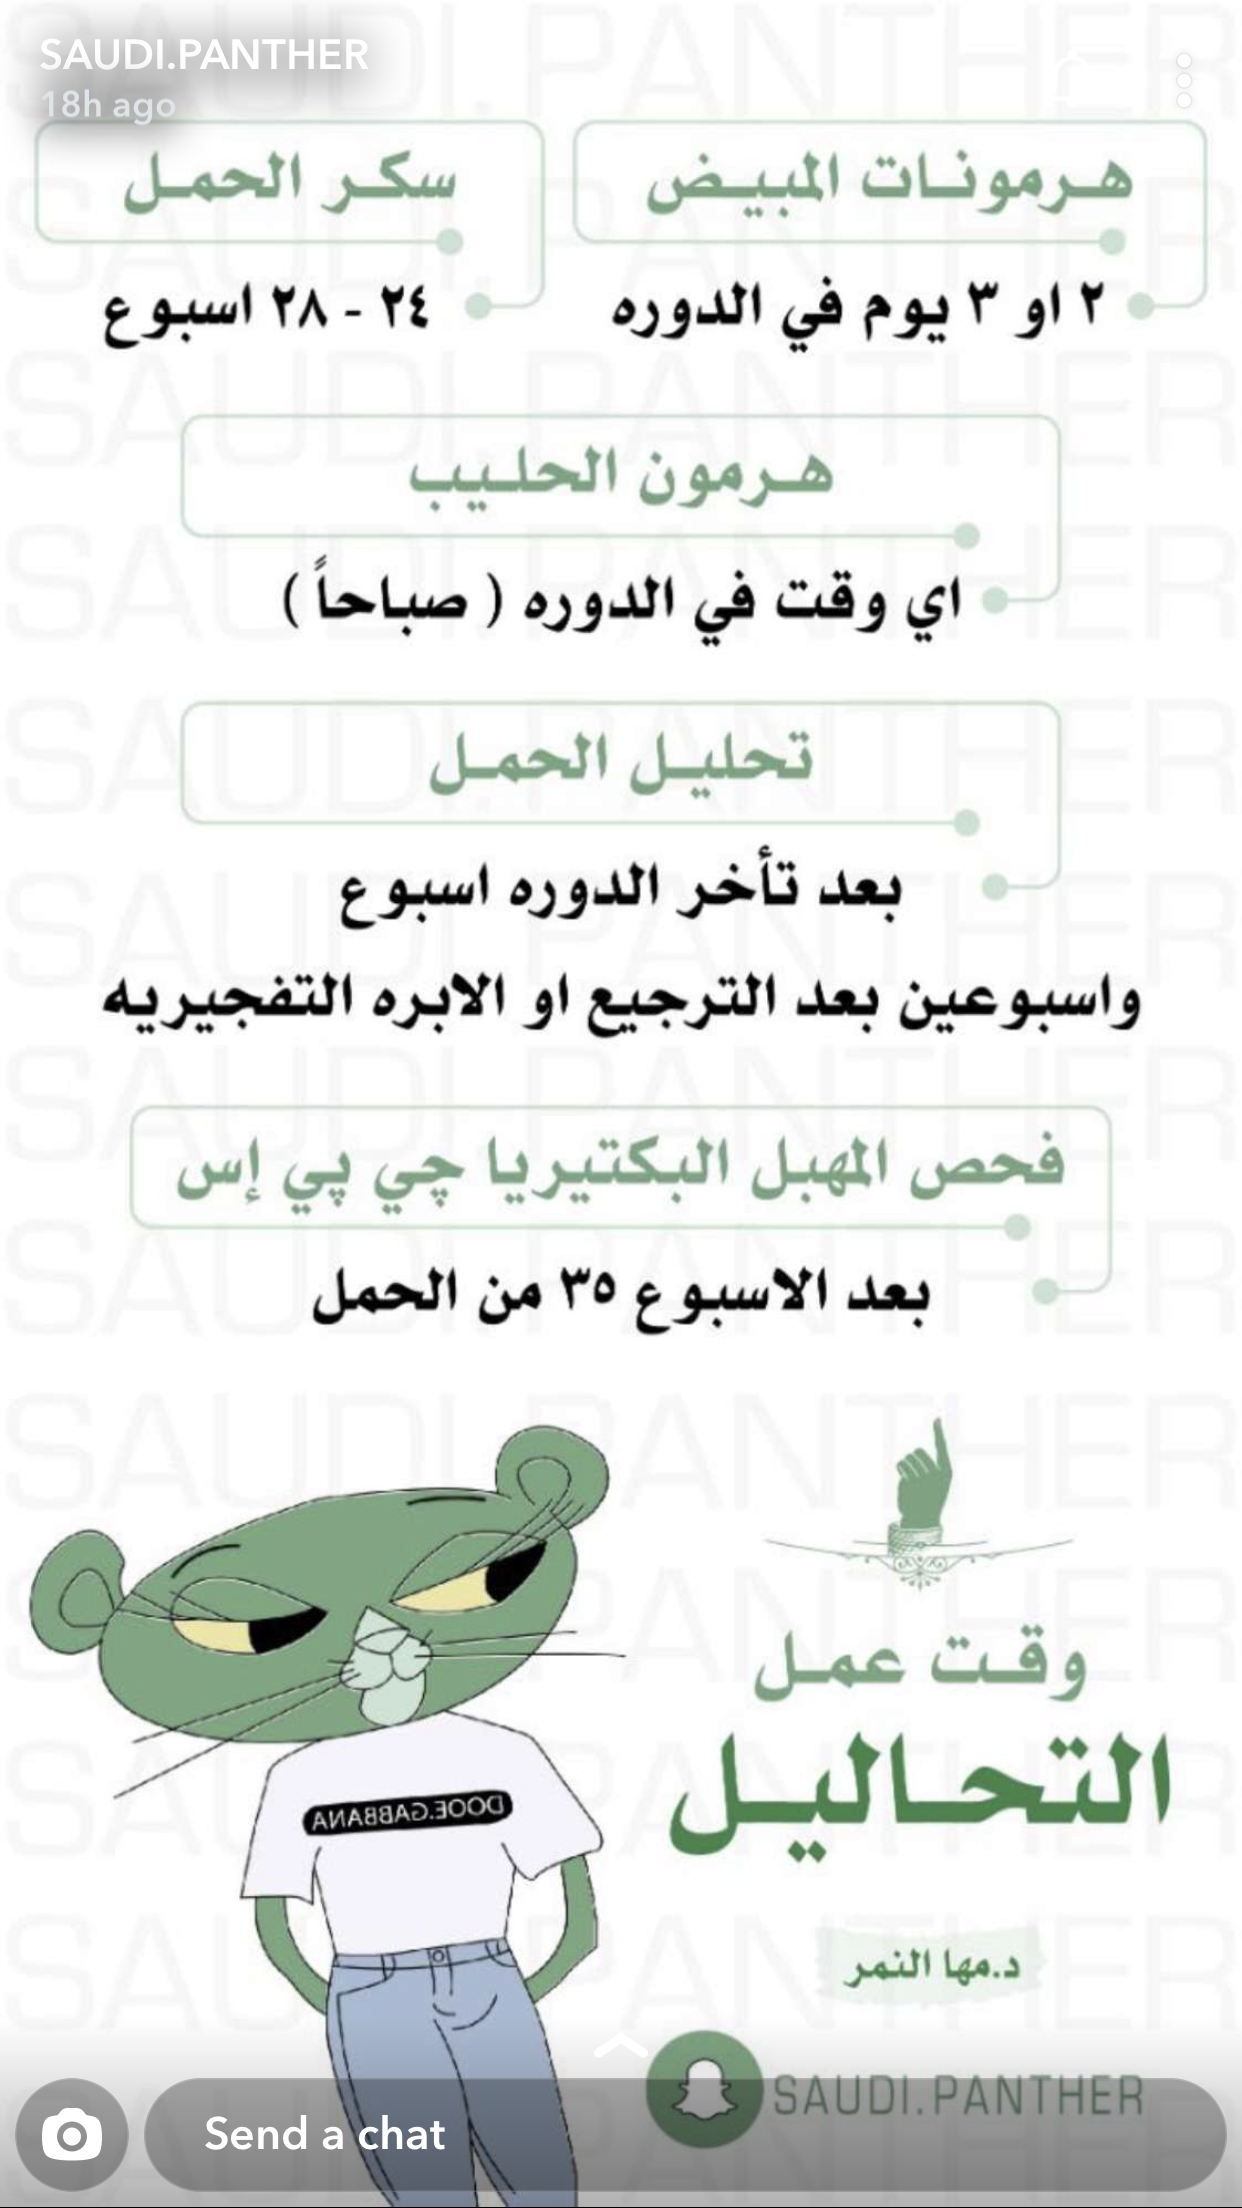 Pin By S On Saudi Panther Health And Fitness Articles Medical Education Baby Education